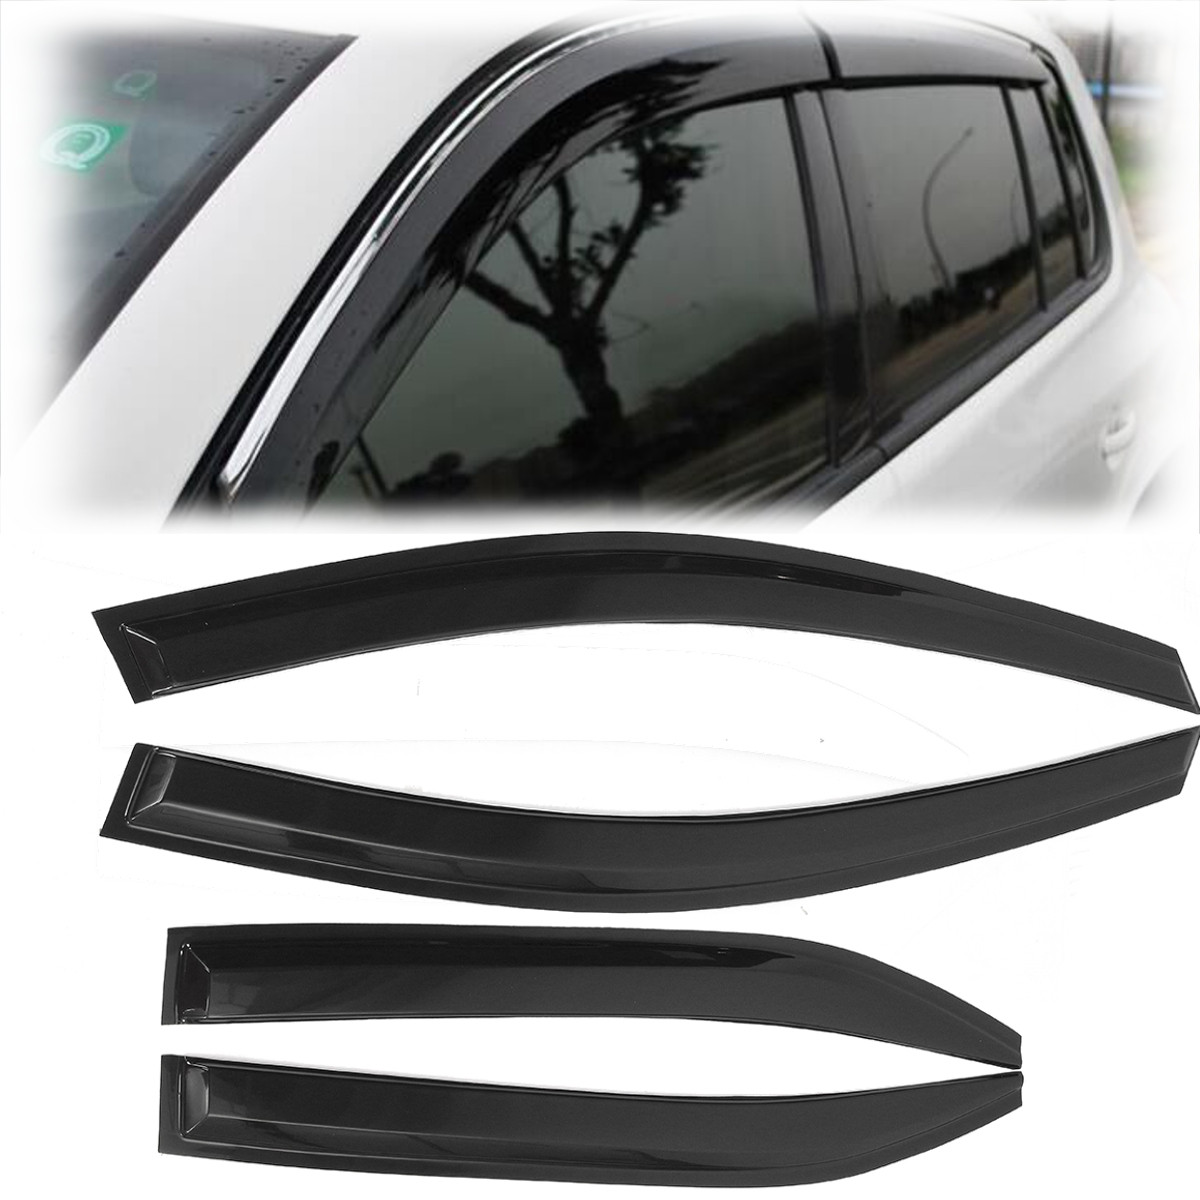 Car Window Visor Rain Guard Sun Visor Vent Shade Wind Deflector For Toyota Camry 2007 2008 2009 2010 2011